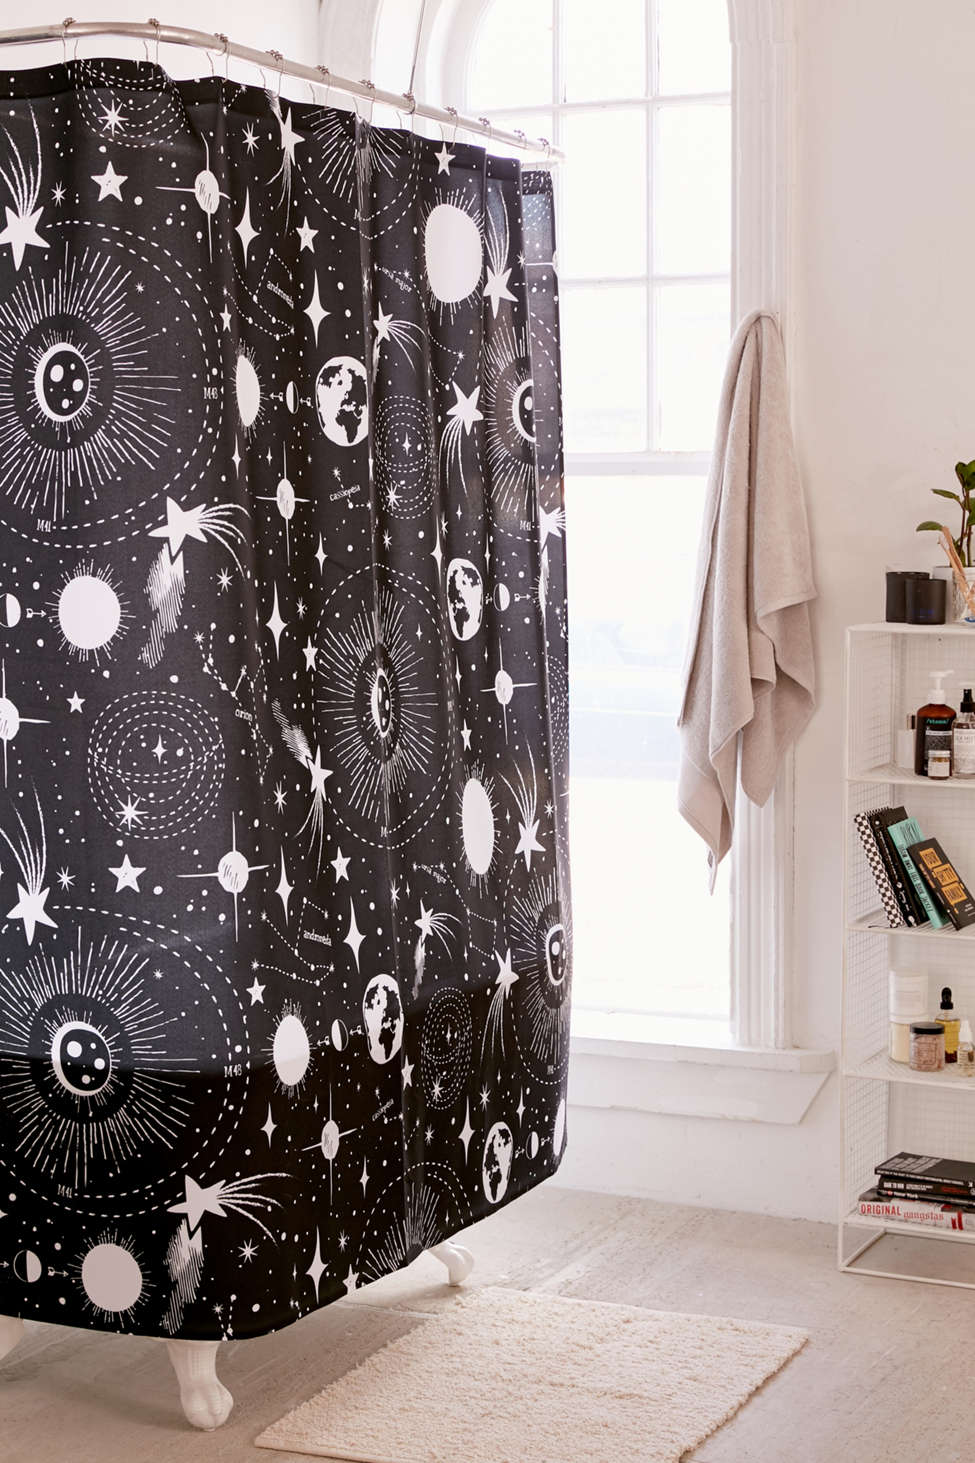 Slide View: 1: Heather Dutton For Deny Solar System Shower Curtain